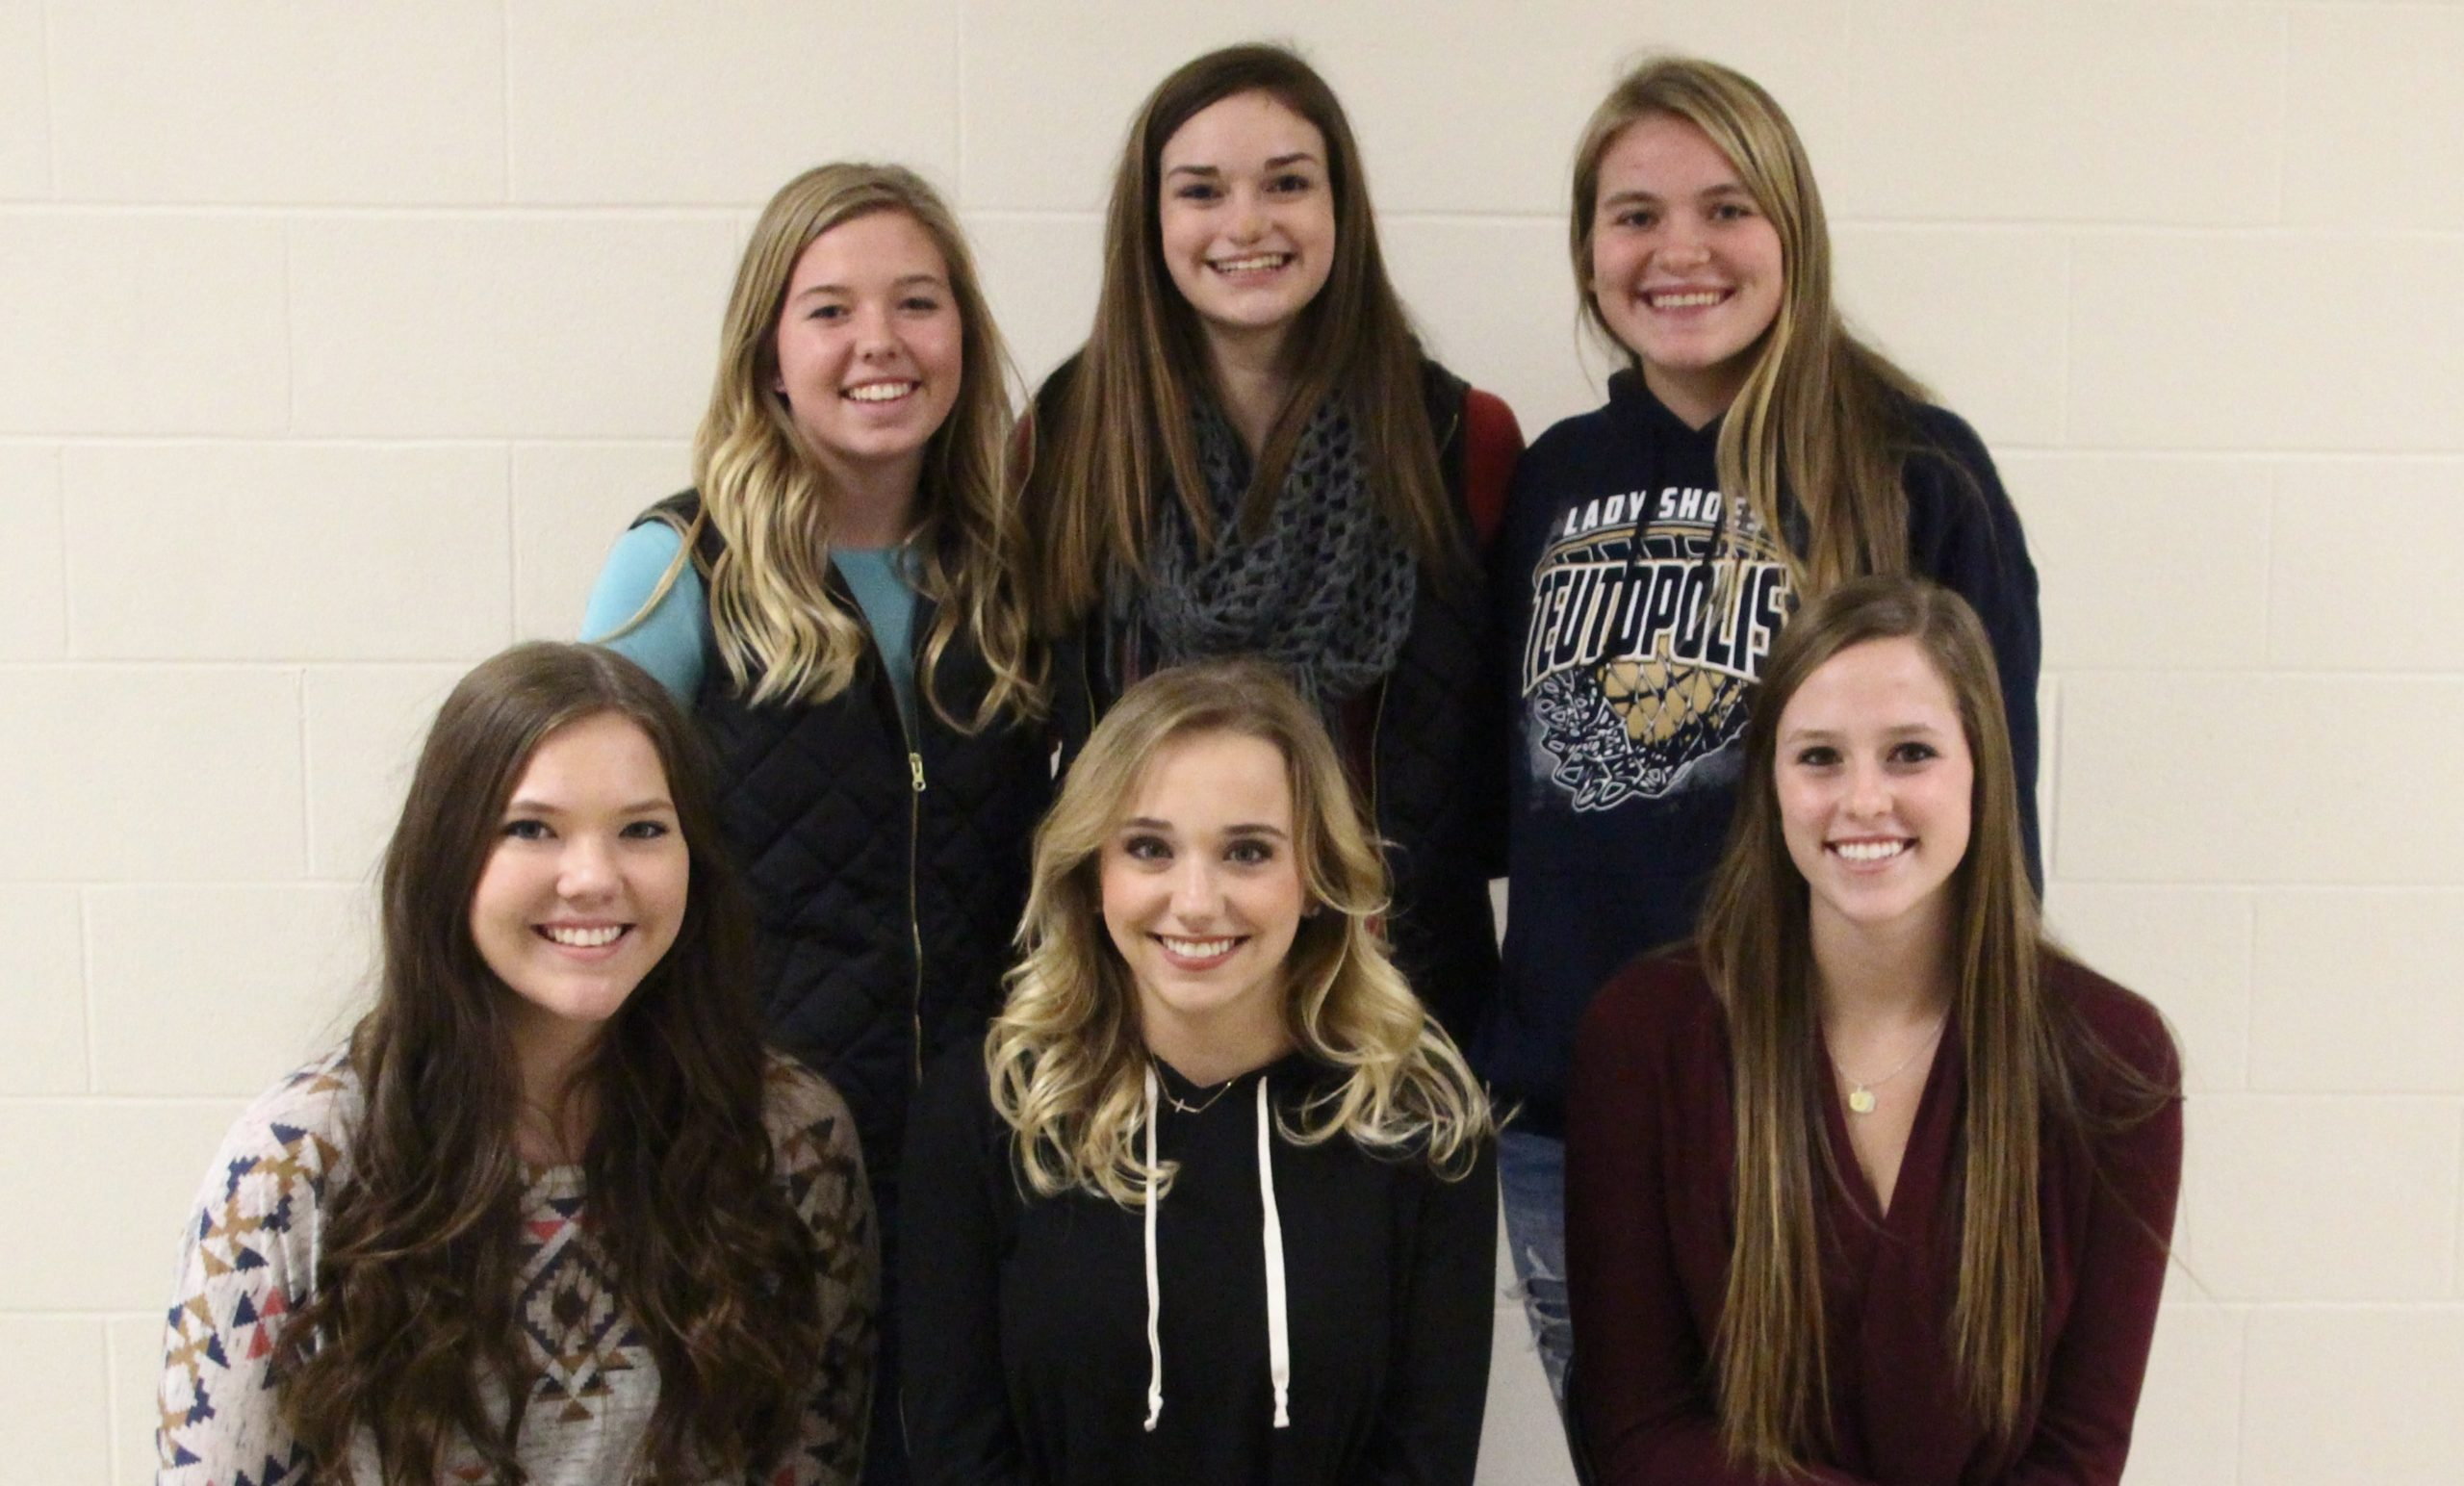 Homecoming Attendants/Queen Candidates Announced for Teutopolis High School